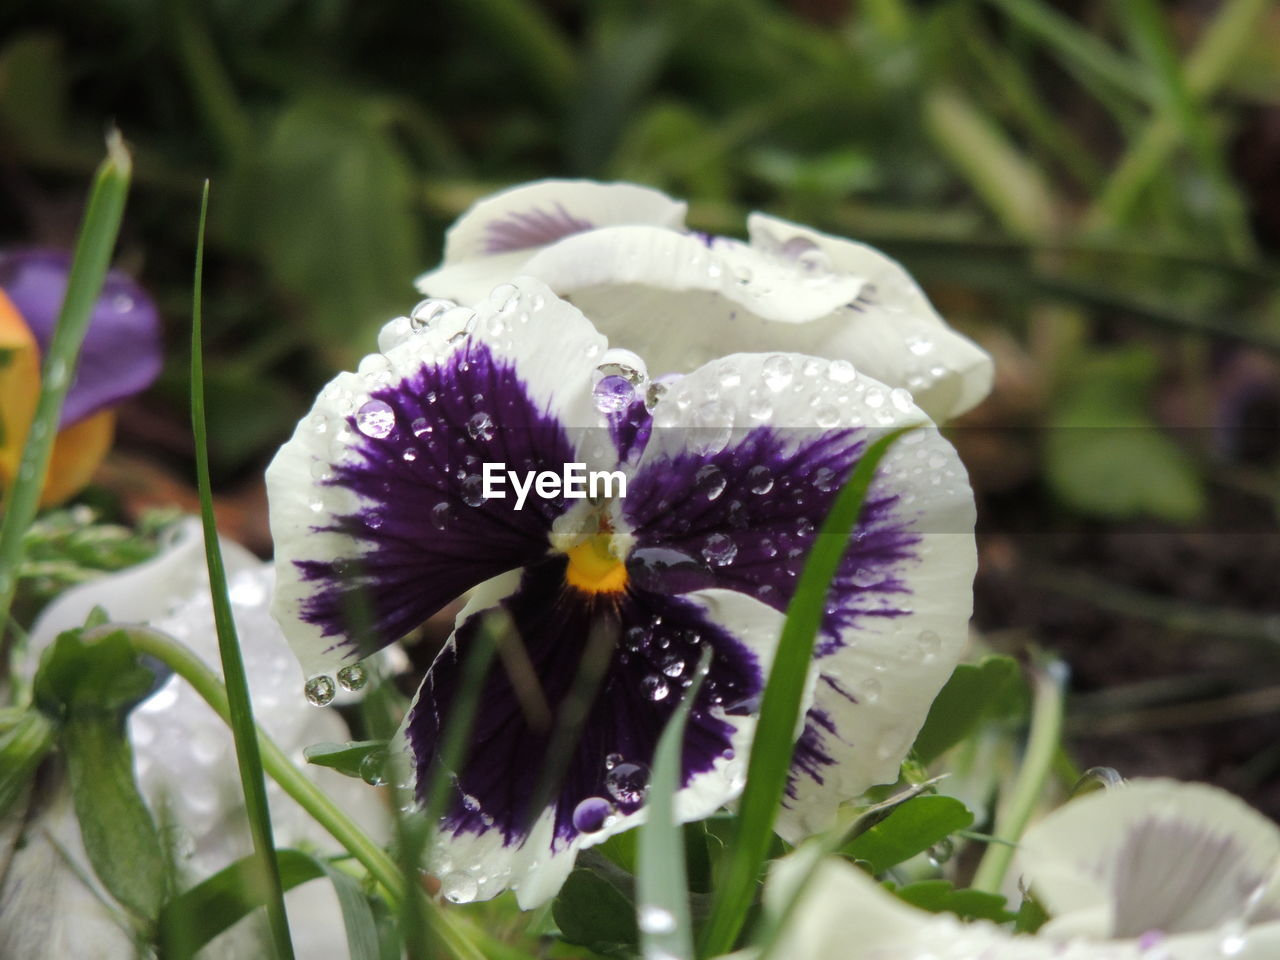 flower, petal, fragility, growth, freshness, beauty in nature, nature, plant, purple, flower head, no people, close-up, outdoors, day, animal themes, one animal, blooming, crocus